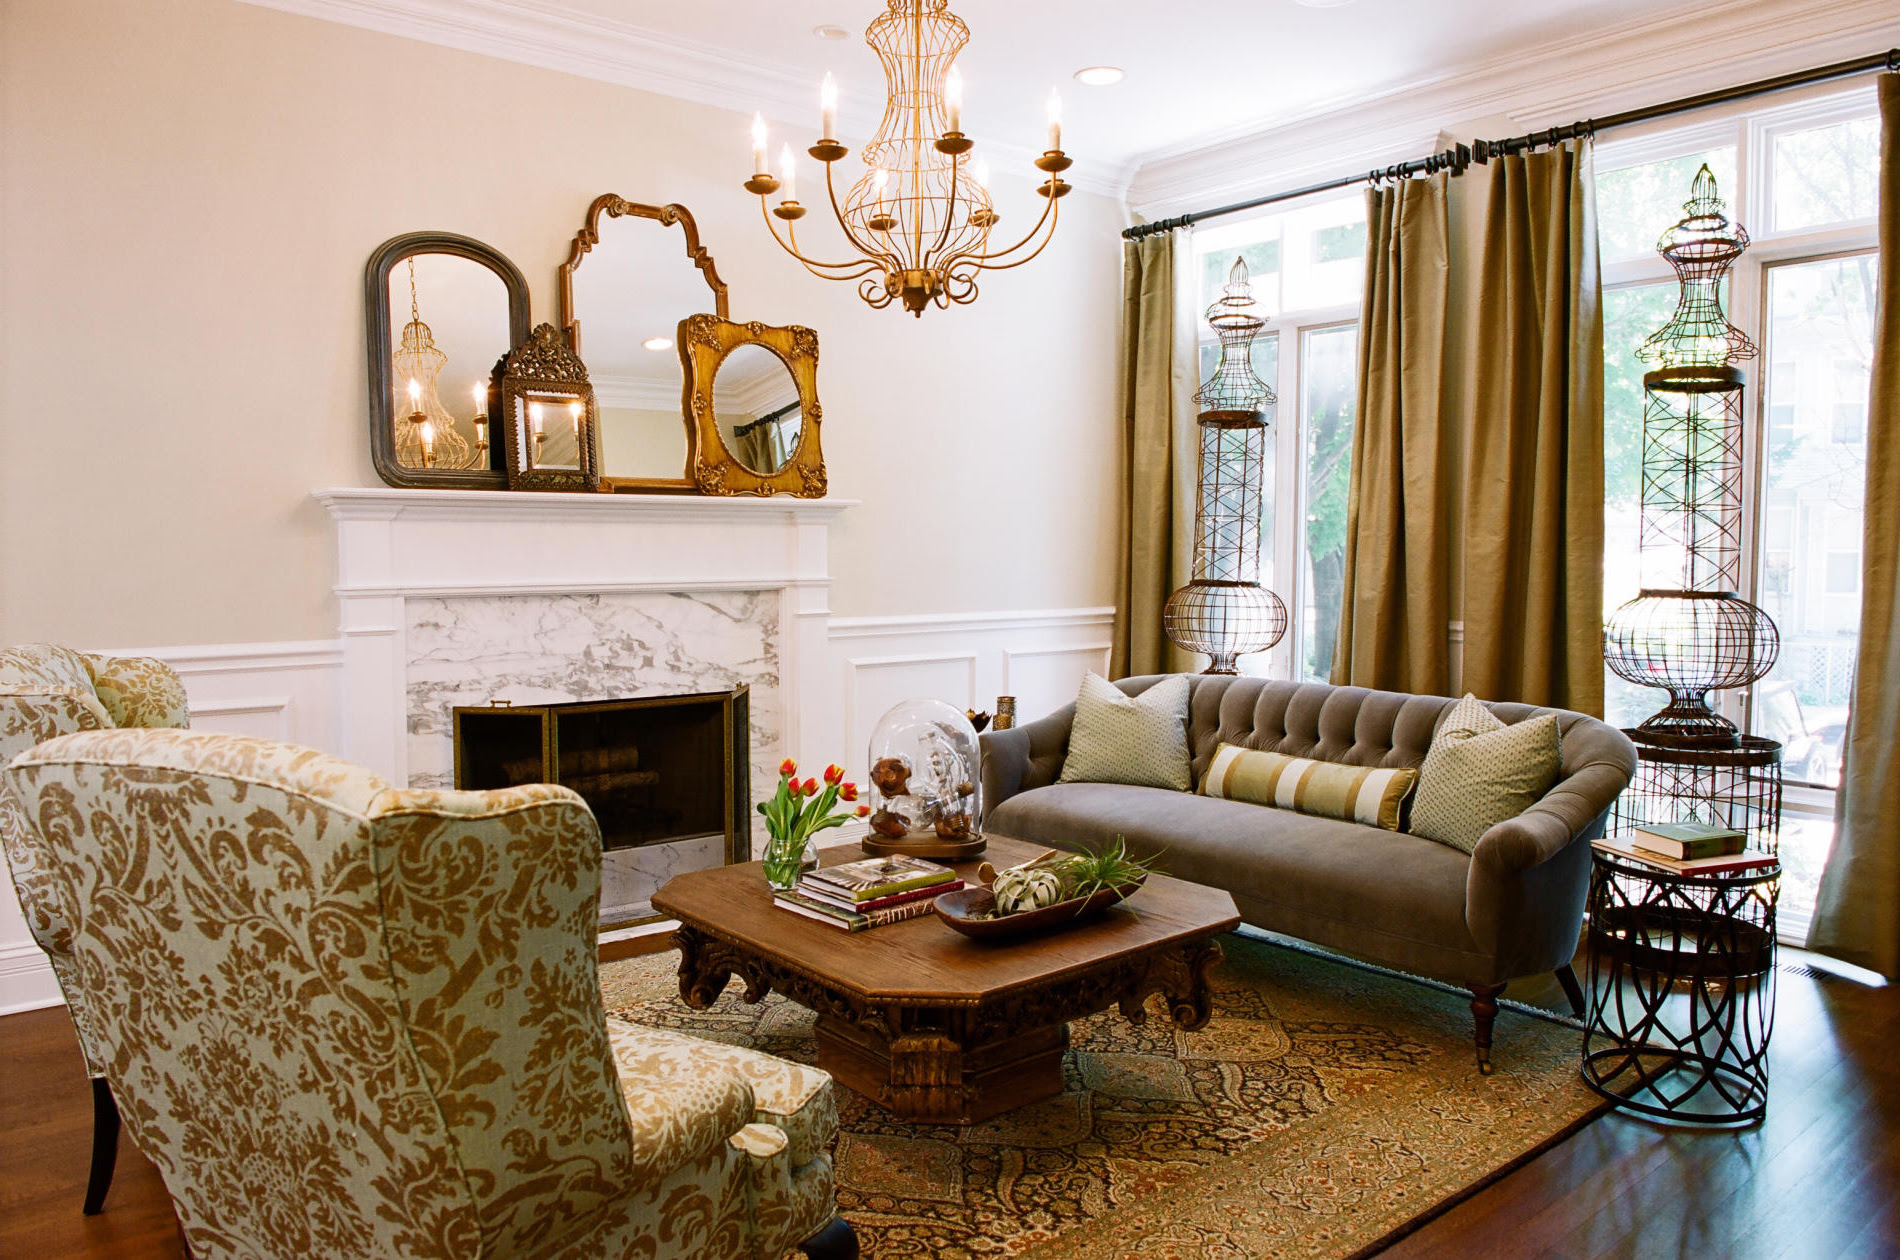 Traditional Country side Theme For Living Room